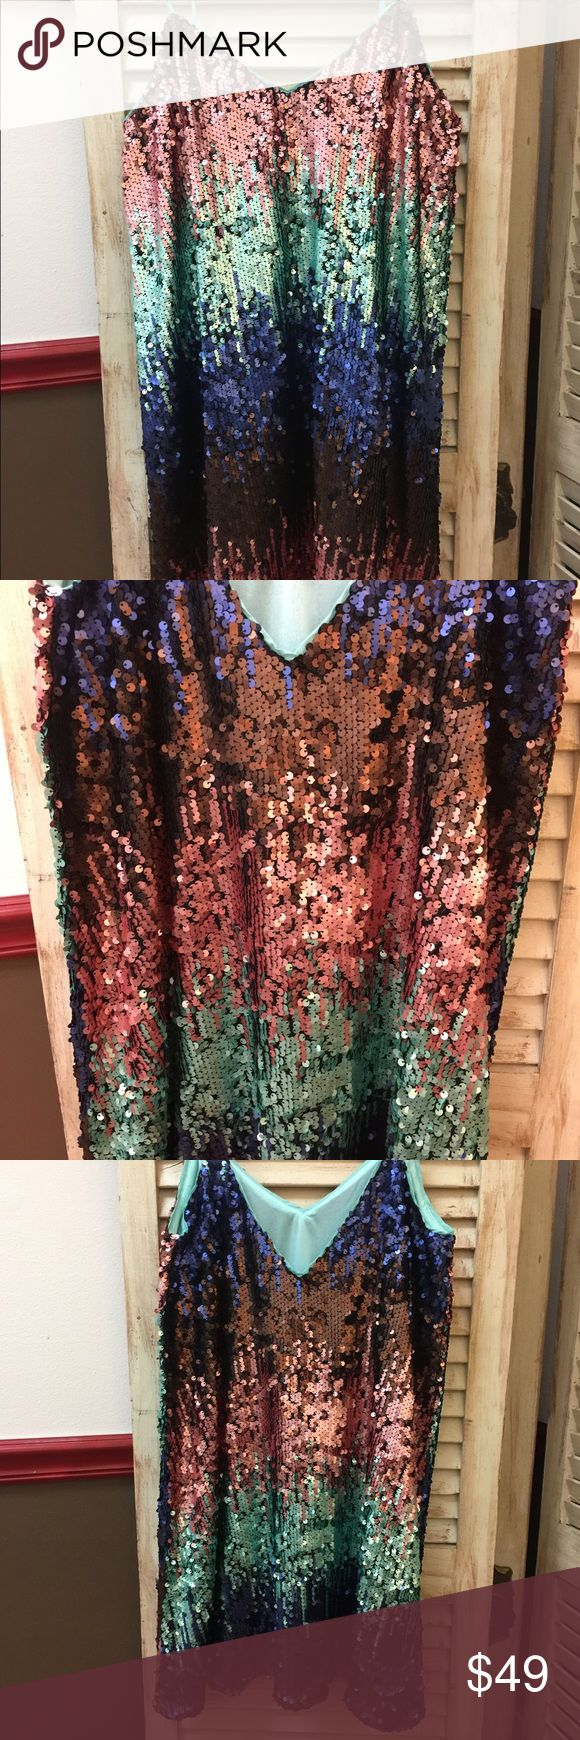 Sequin Dress Multi Color Sequin Dress with spaghetti straps & inner lining. Small 4-6, Medium 7-9, & Large 10-12. Dresses Midi